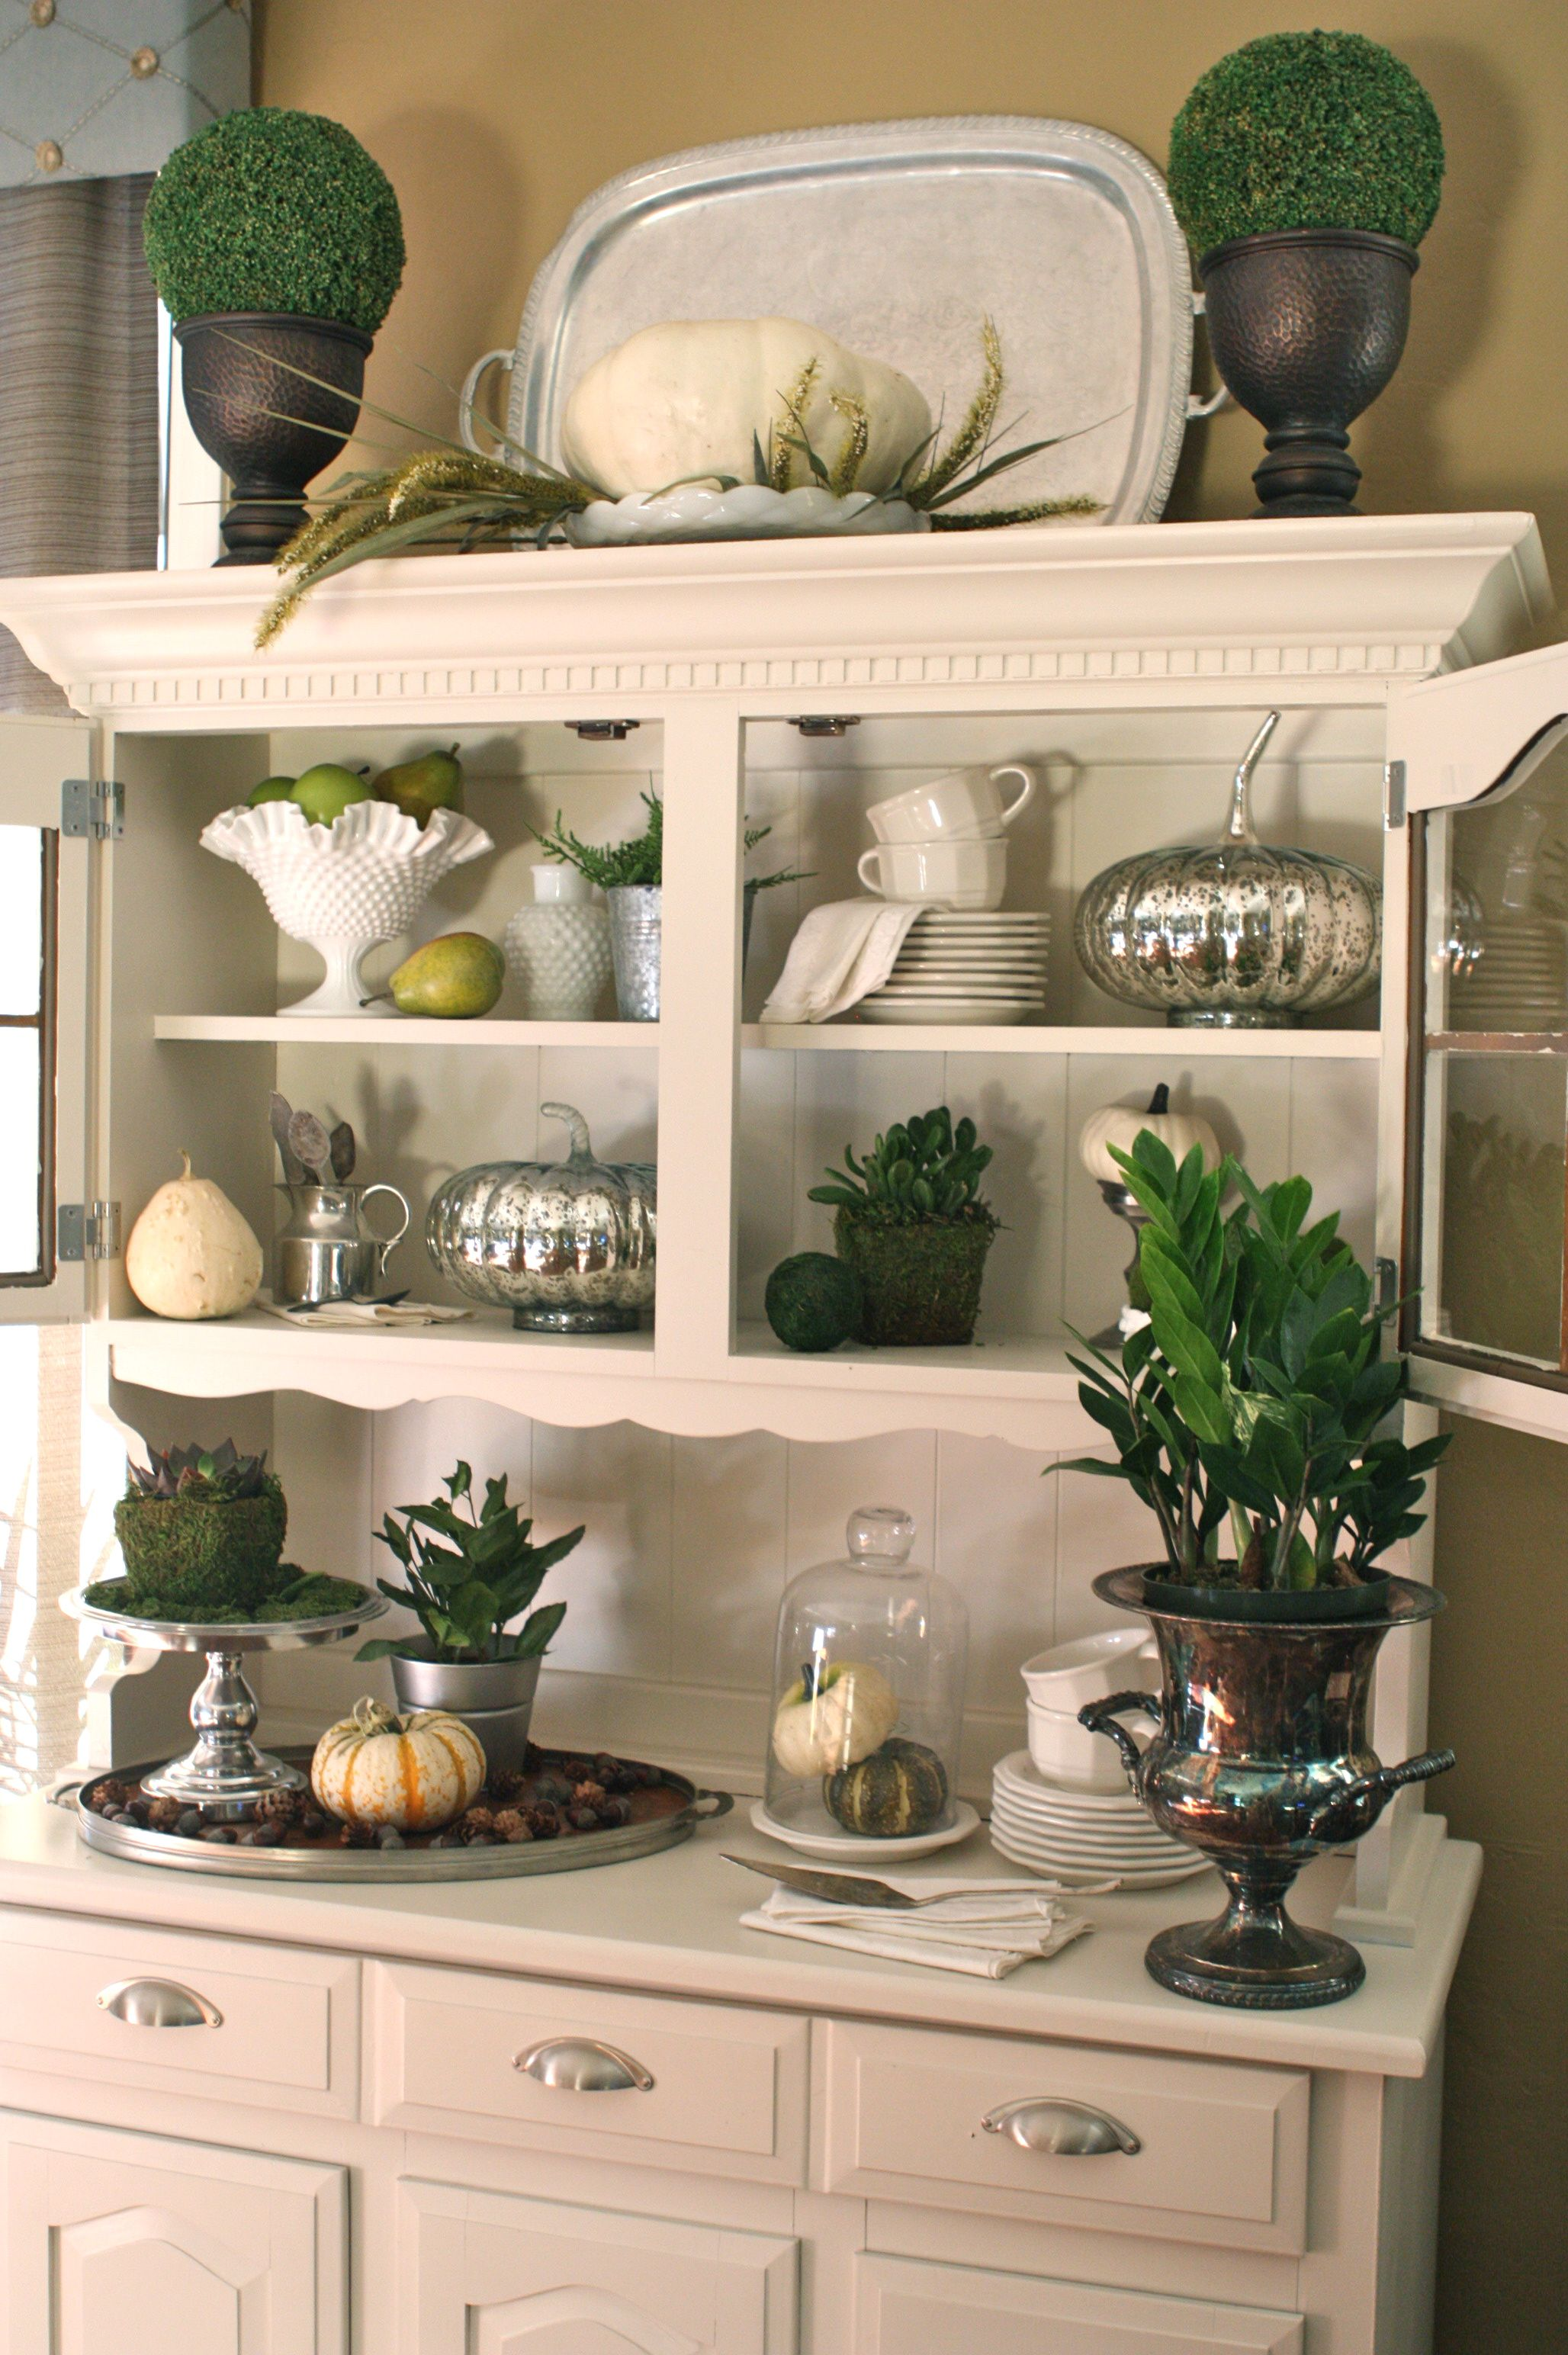 4af83604f1de54db252f418065caff23 Ideas For Decorating Above Kitchen Cabinets Italian on wasted space above kitchen cabinets, interior decorating above kitchen cabinets, decorating tips above kitchen cabinets,